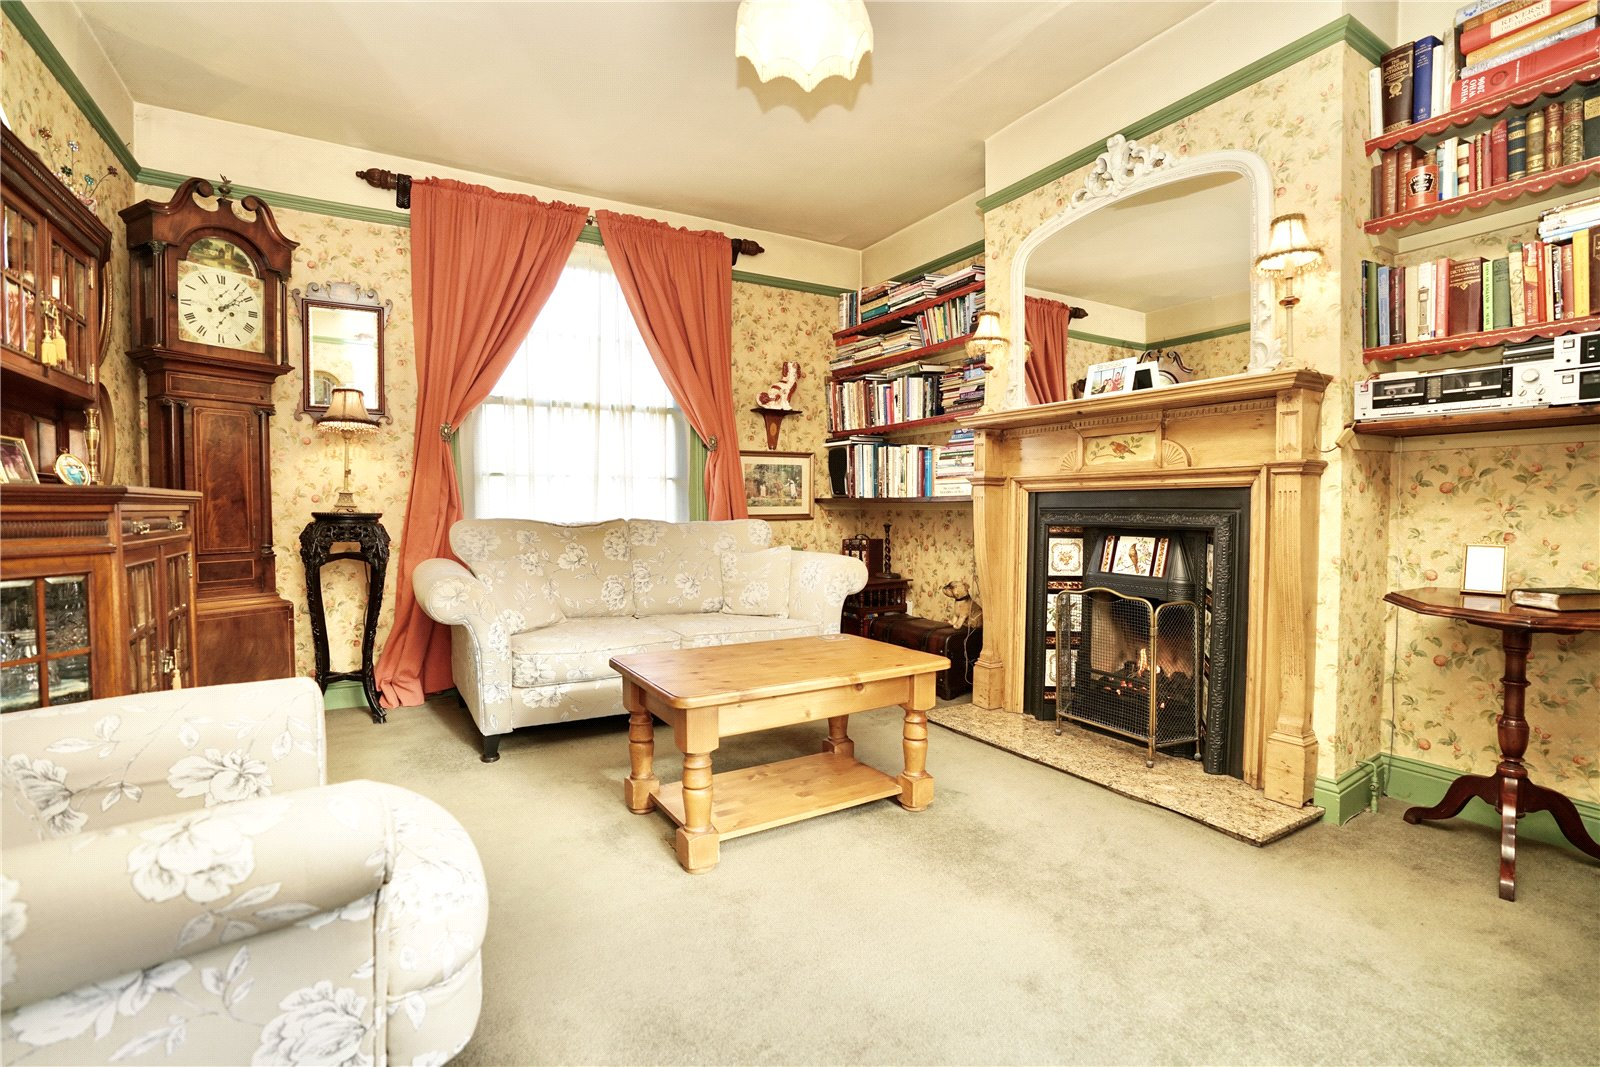 4 bed house for sale in Great Staughton 7